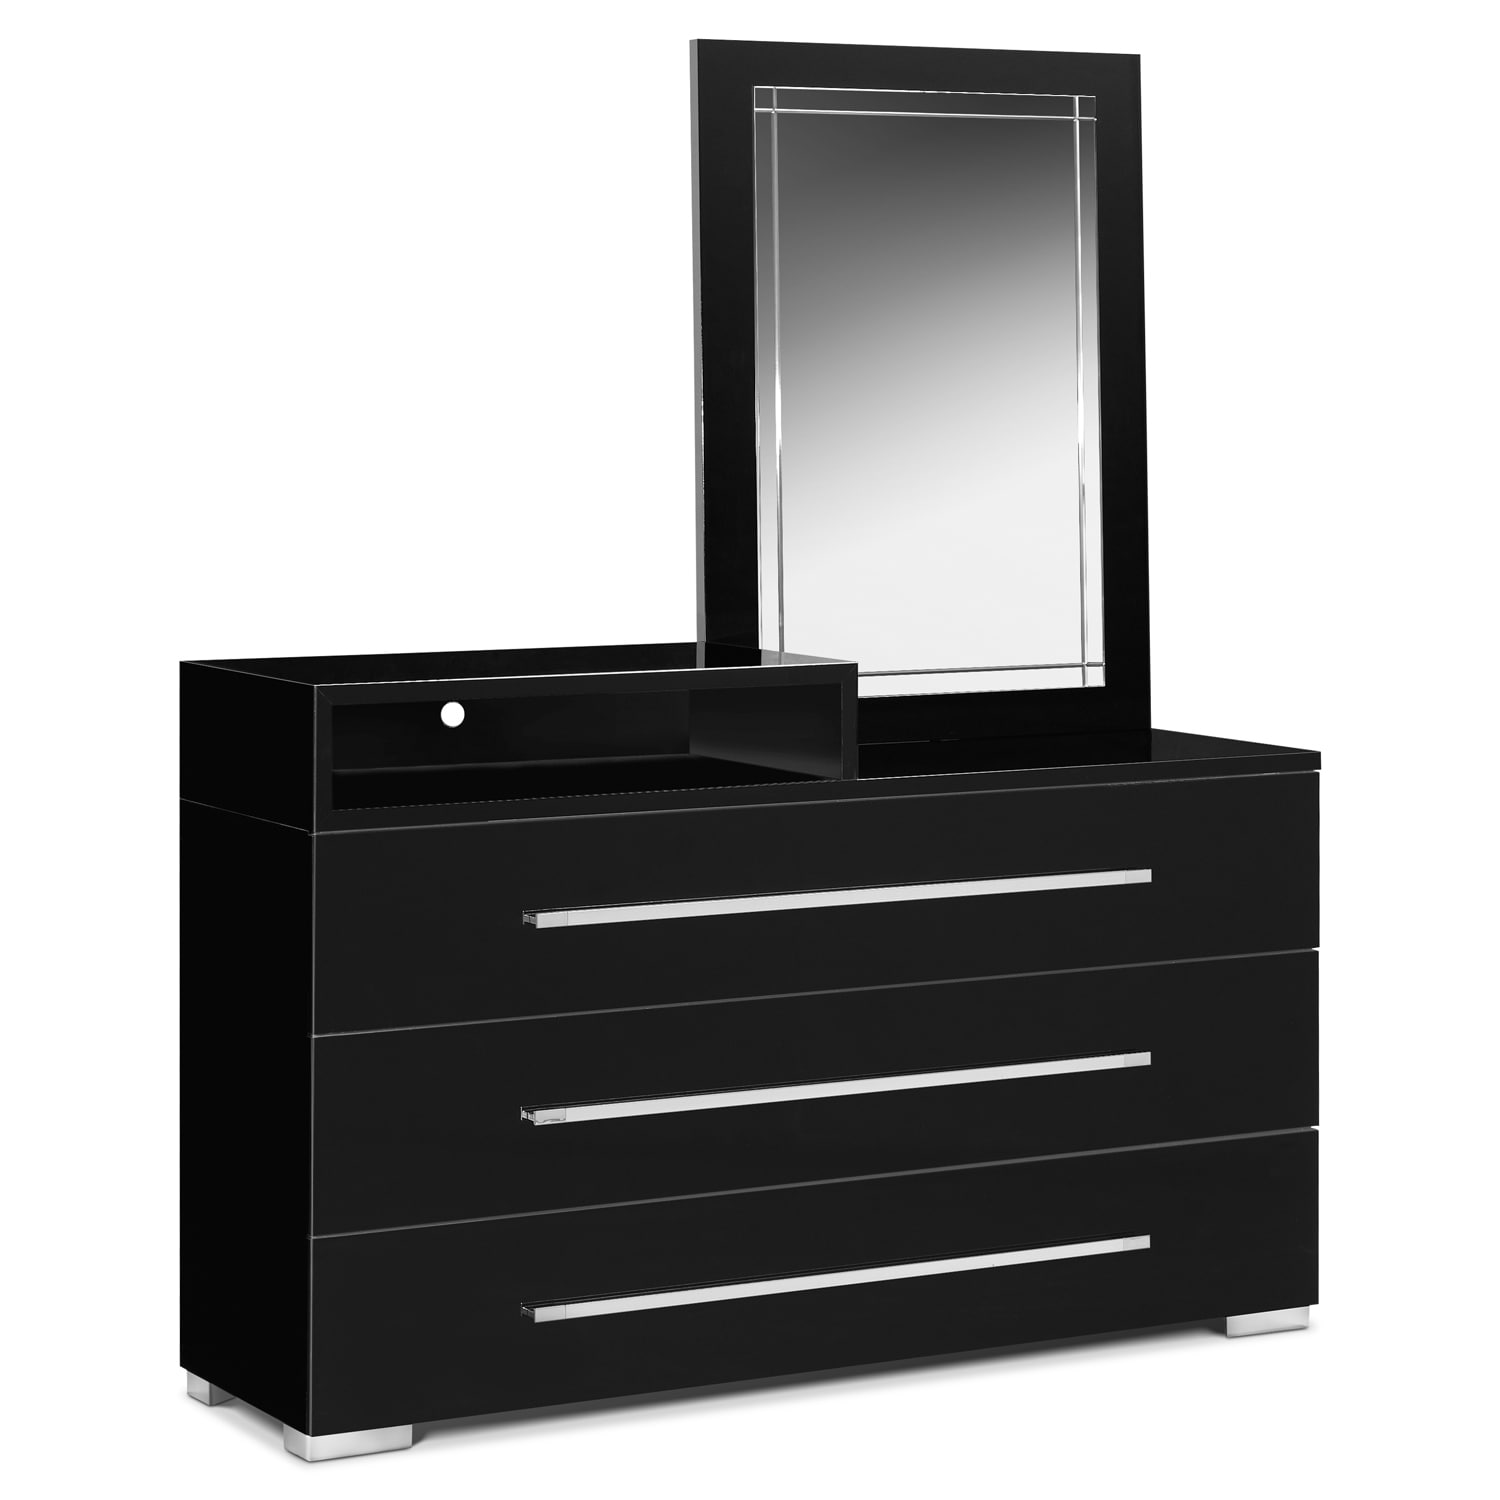 Dimora Black Dresser & Mirror with Deck